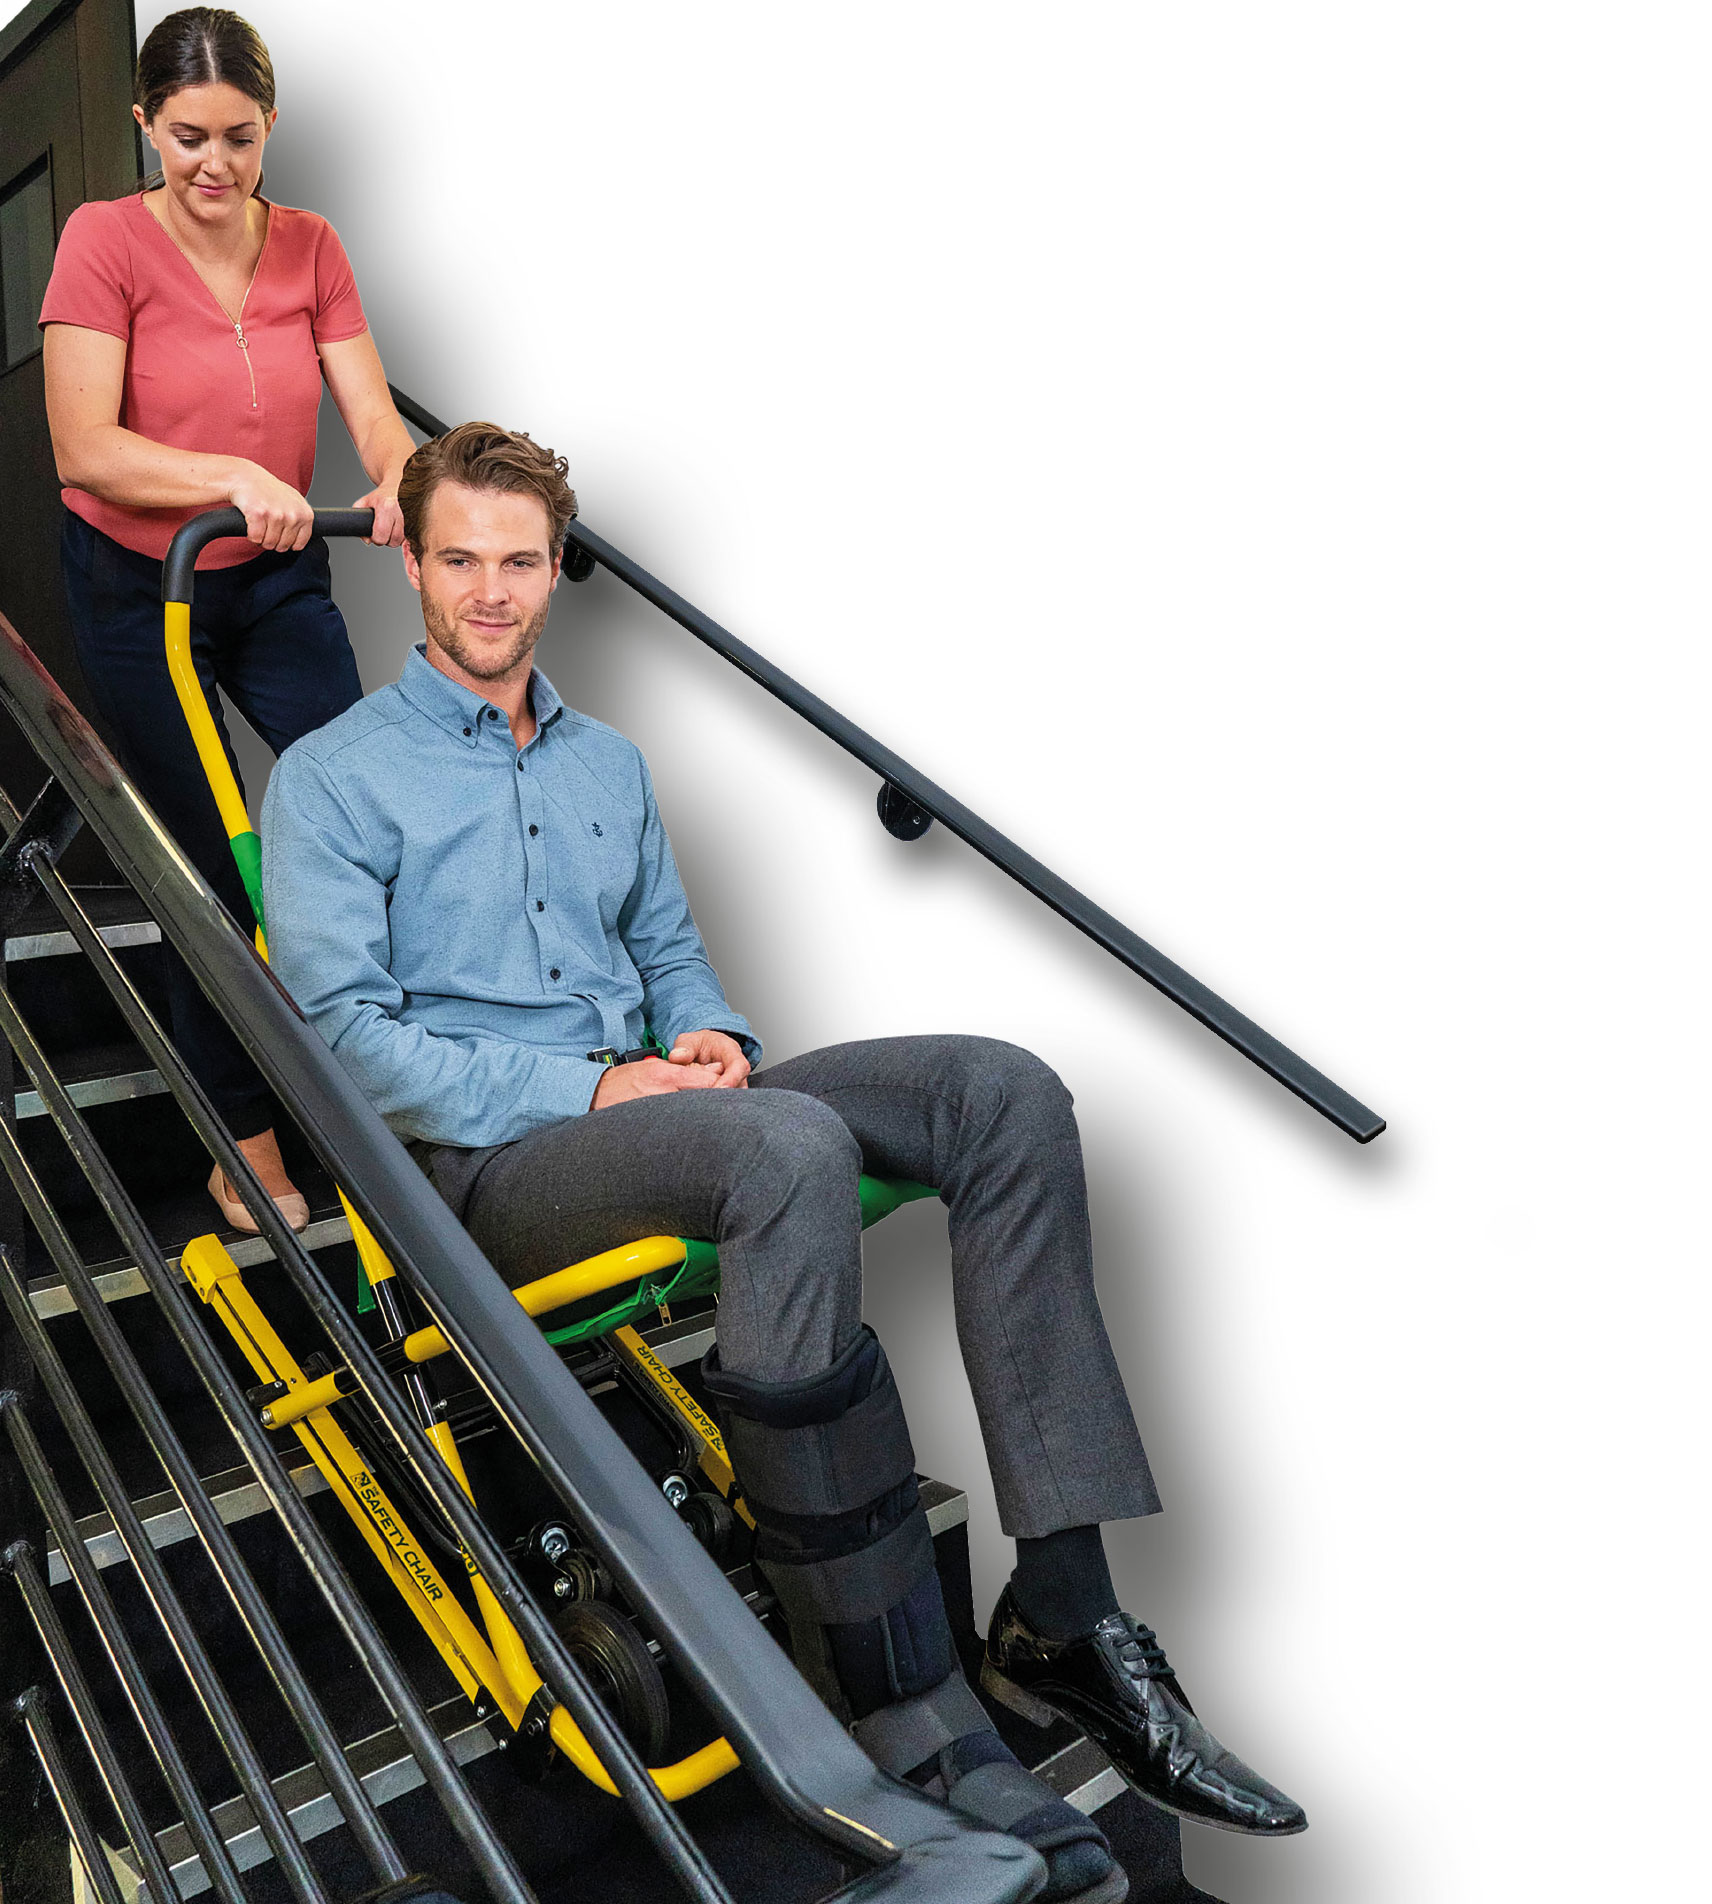 SC-4000-on-Stair-Main-Website-Image